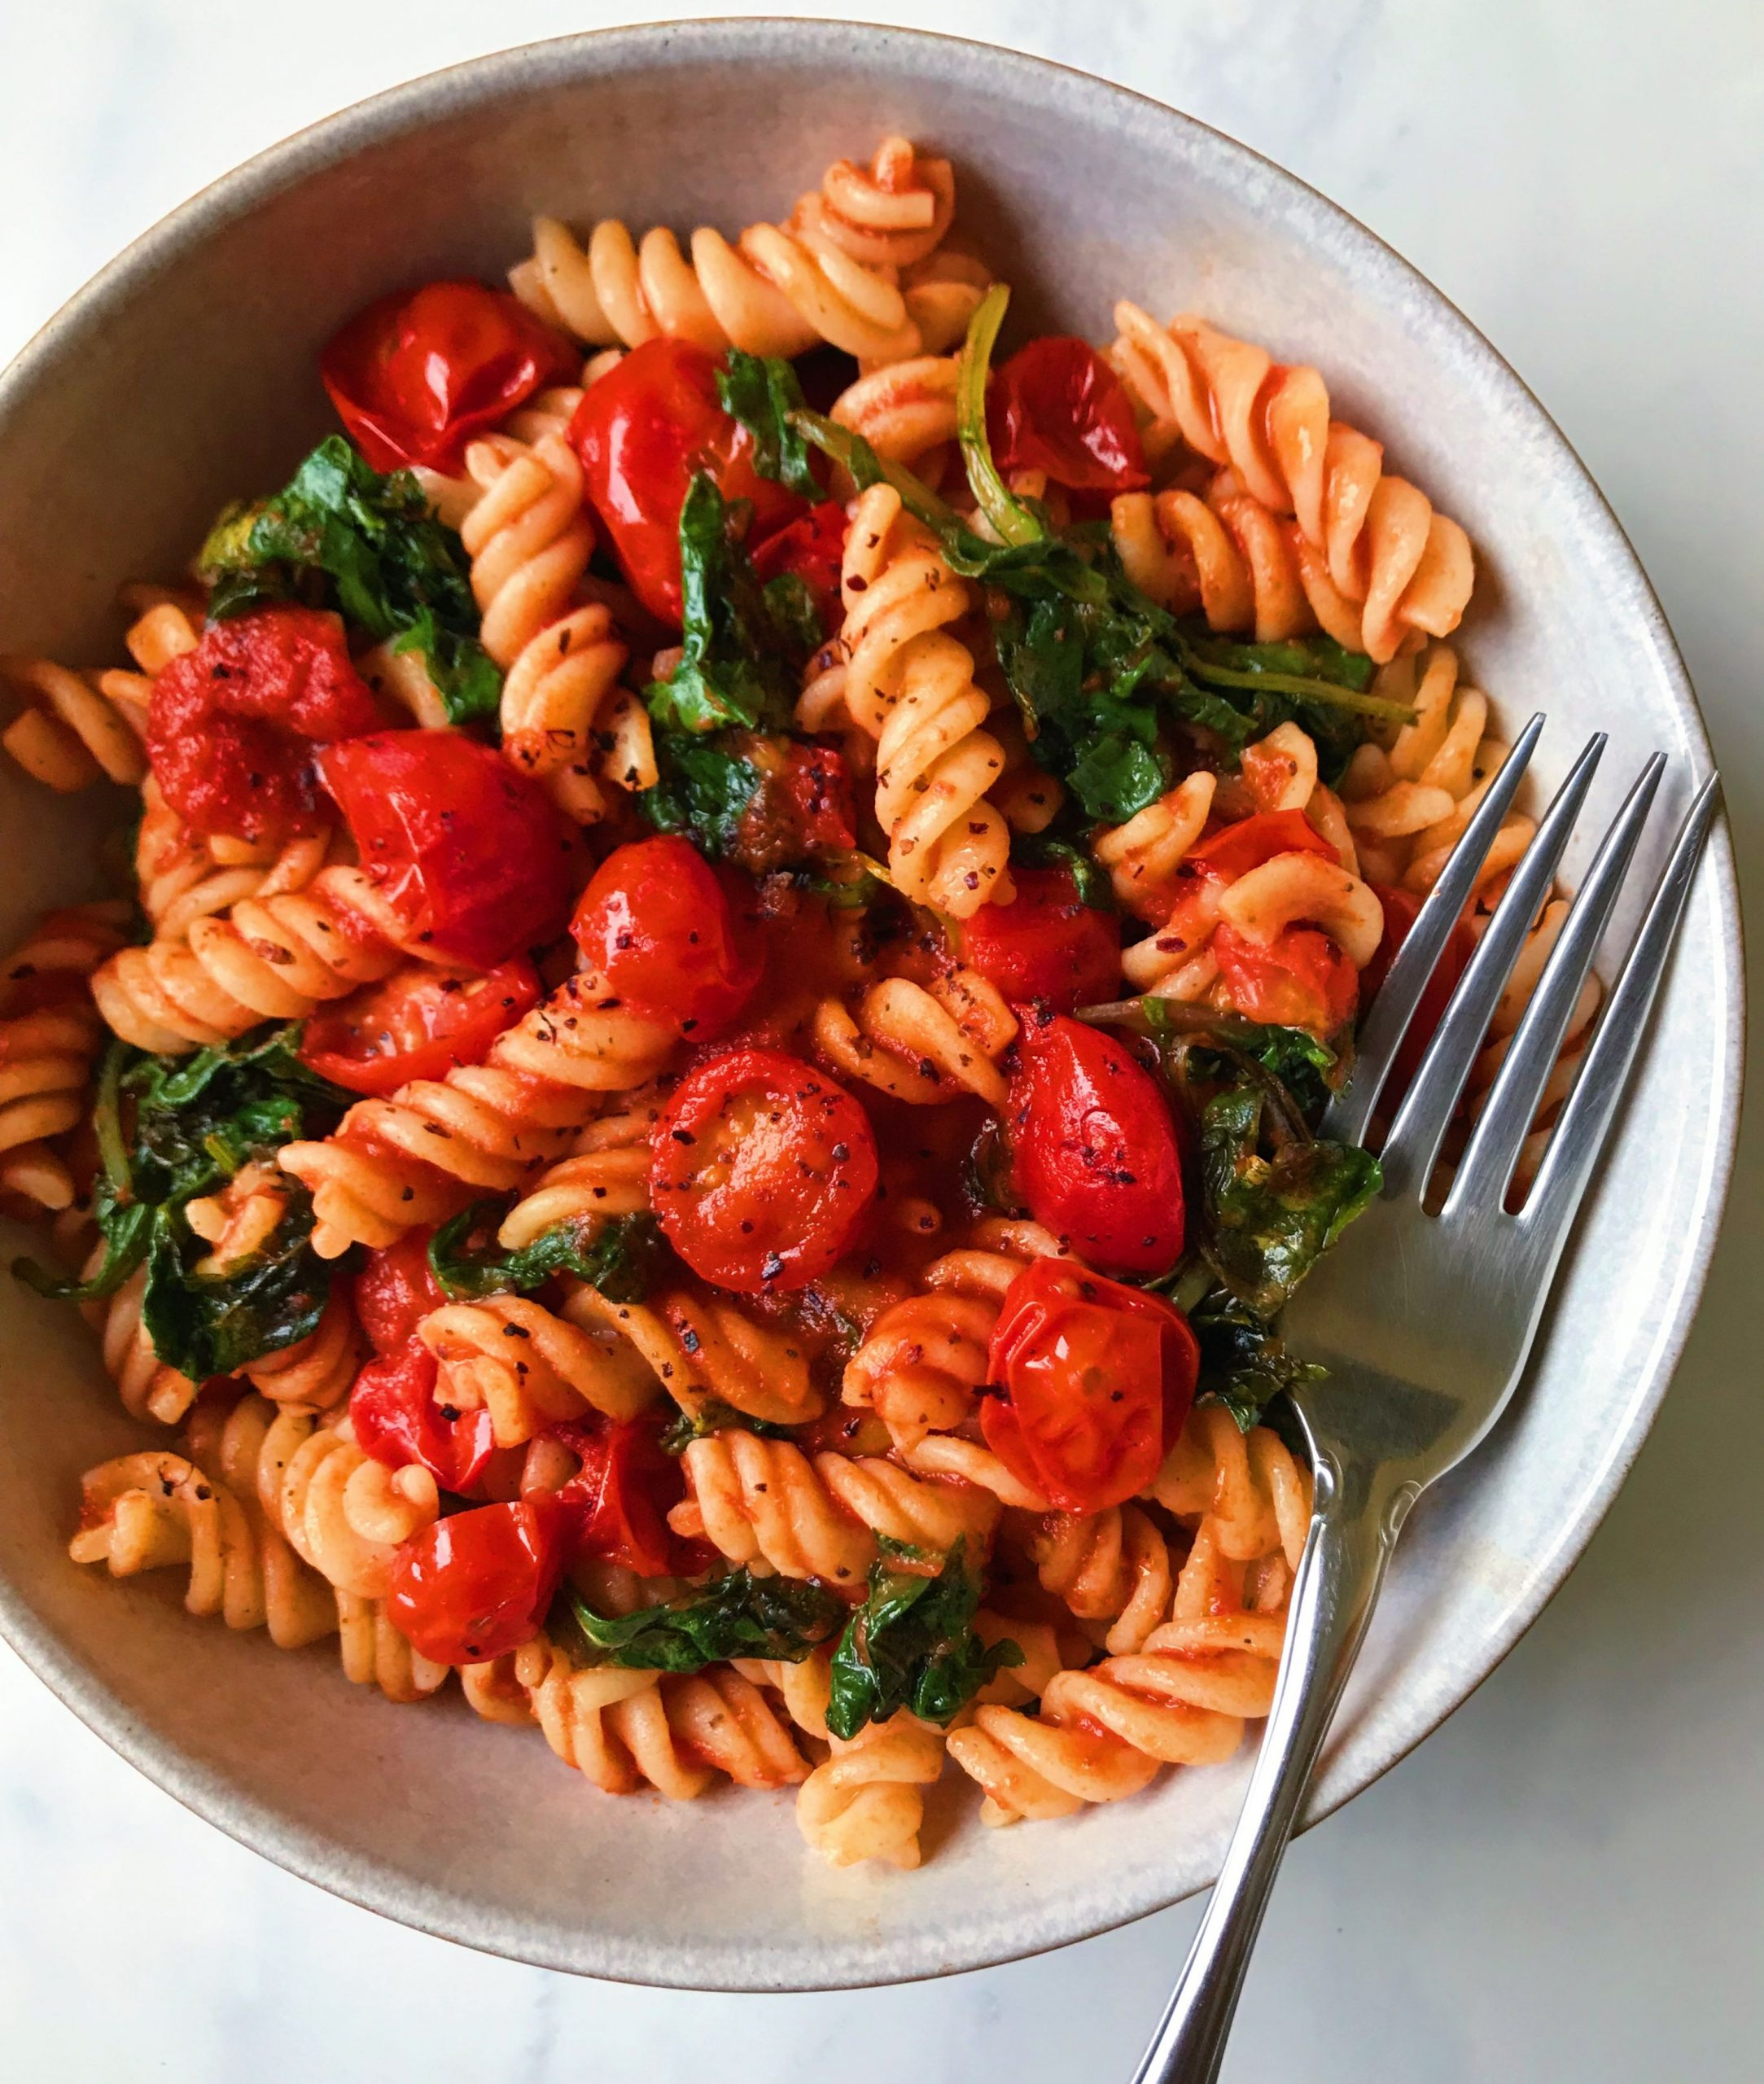 Hearty Kale and Marinara Pasta